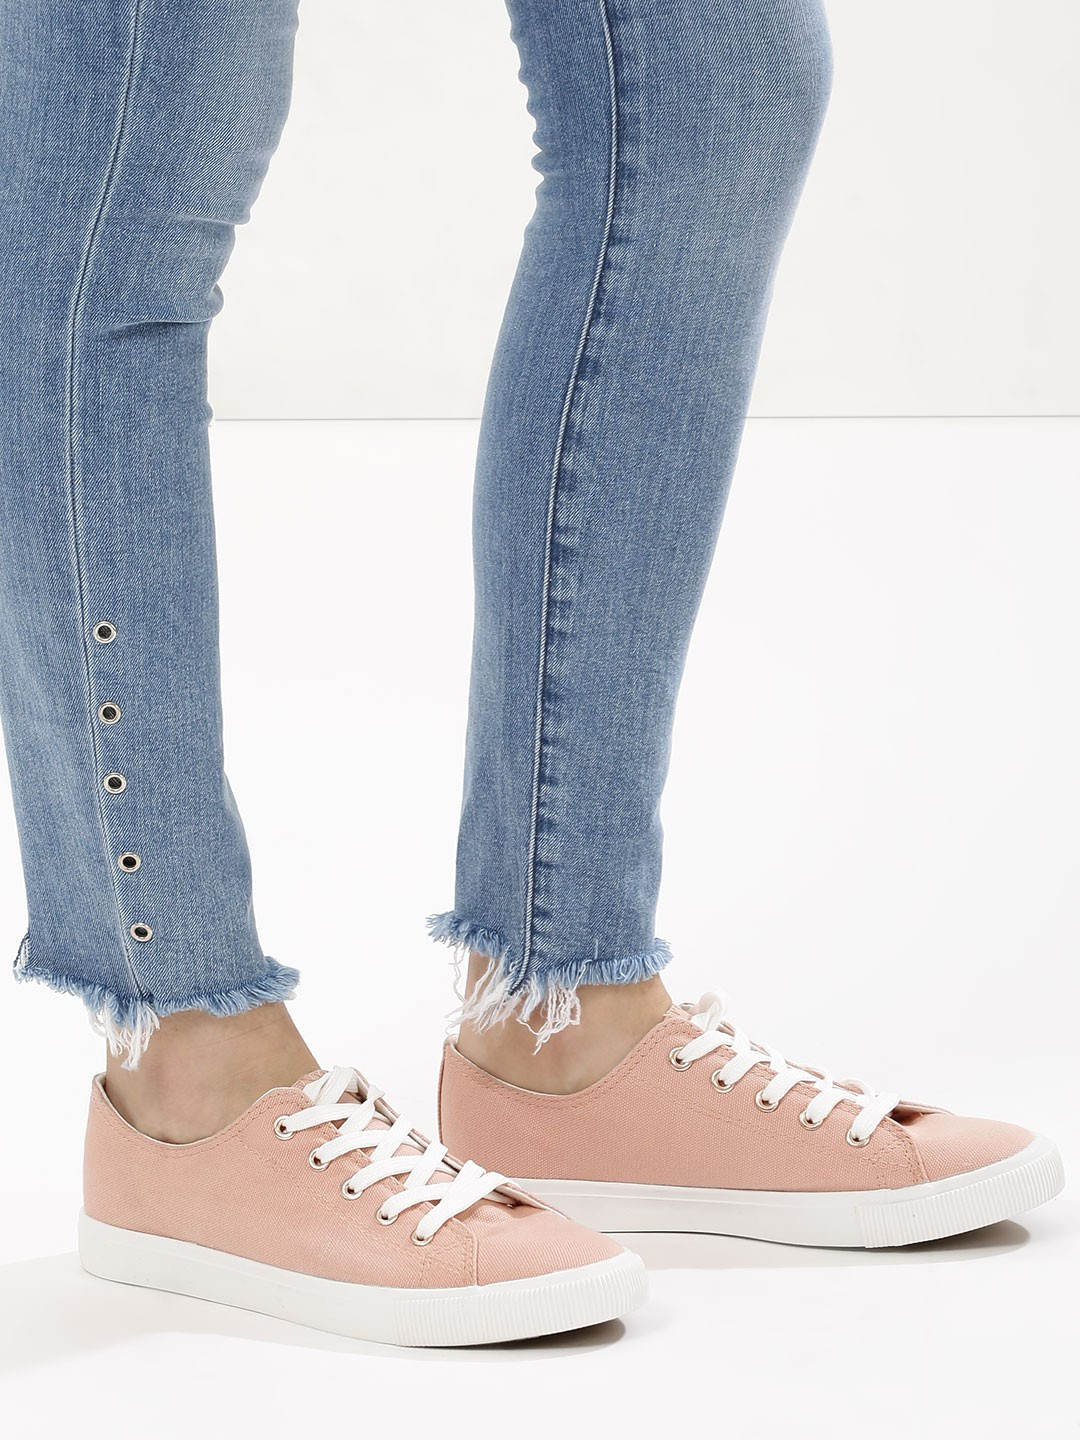 New Look Light Pink Trainers 1